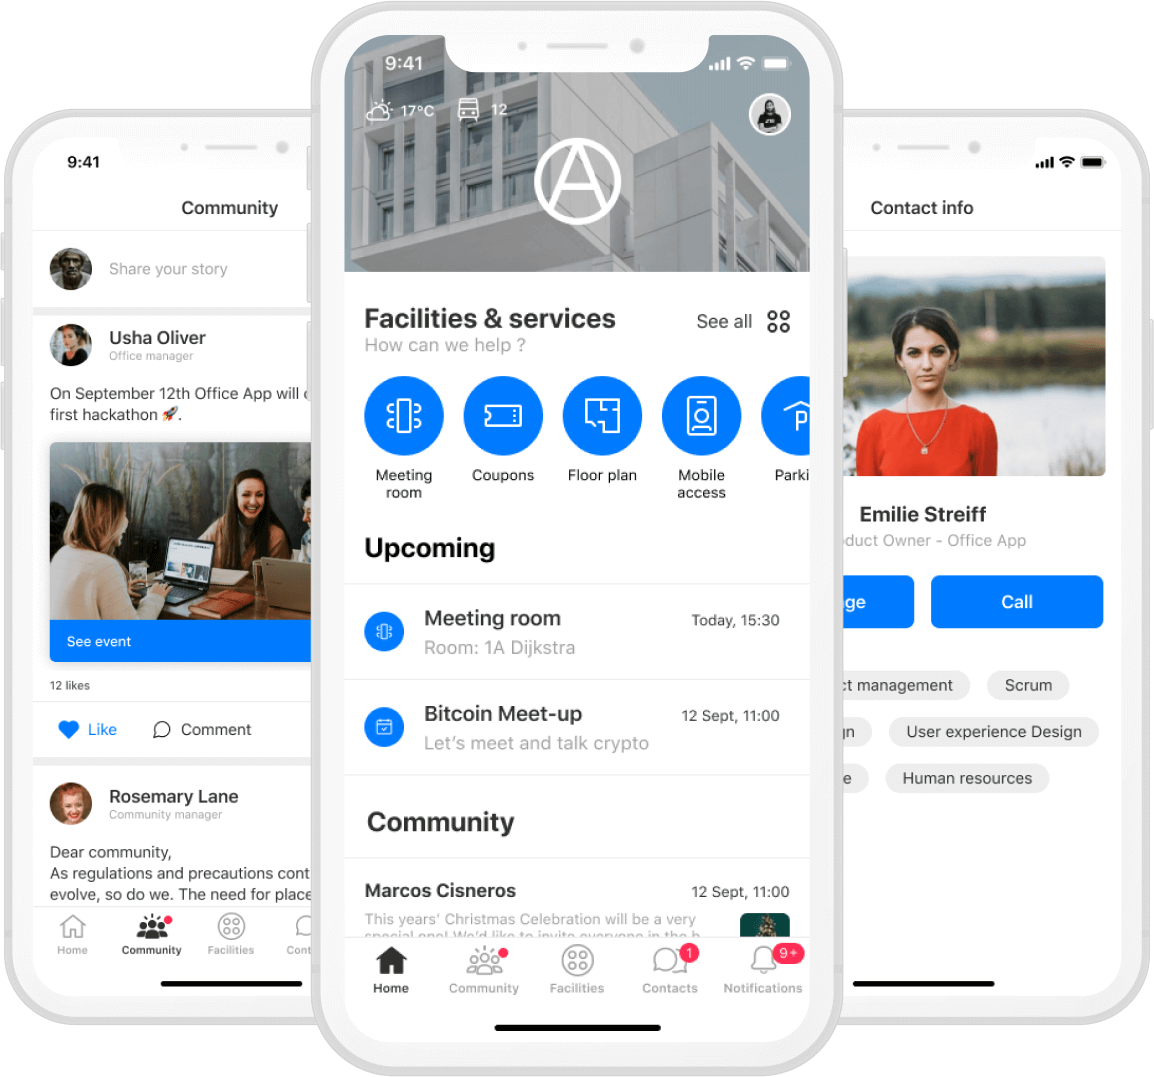 Office App product